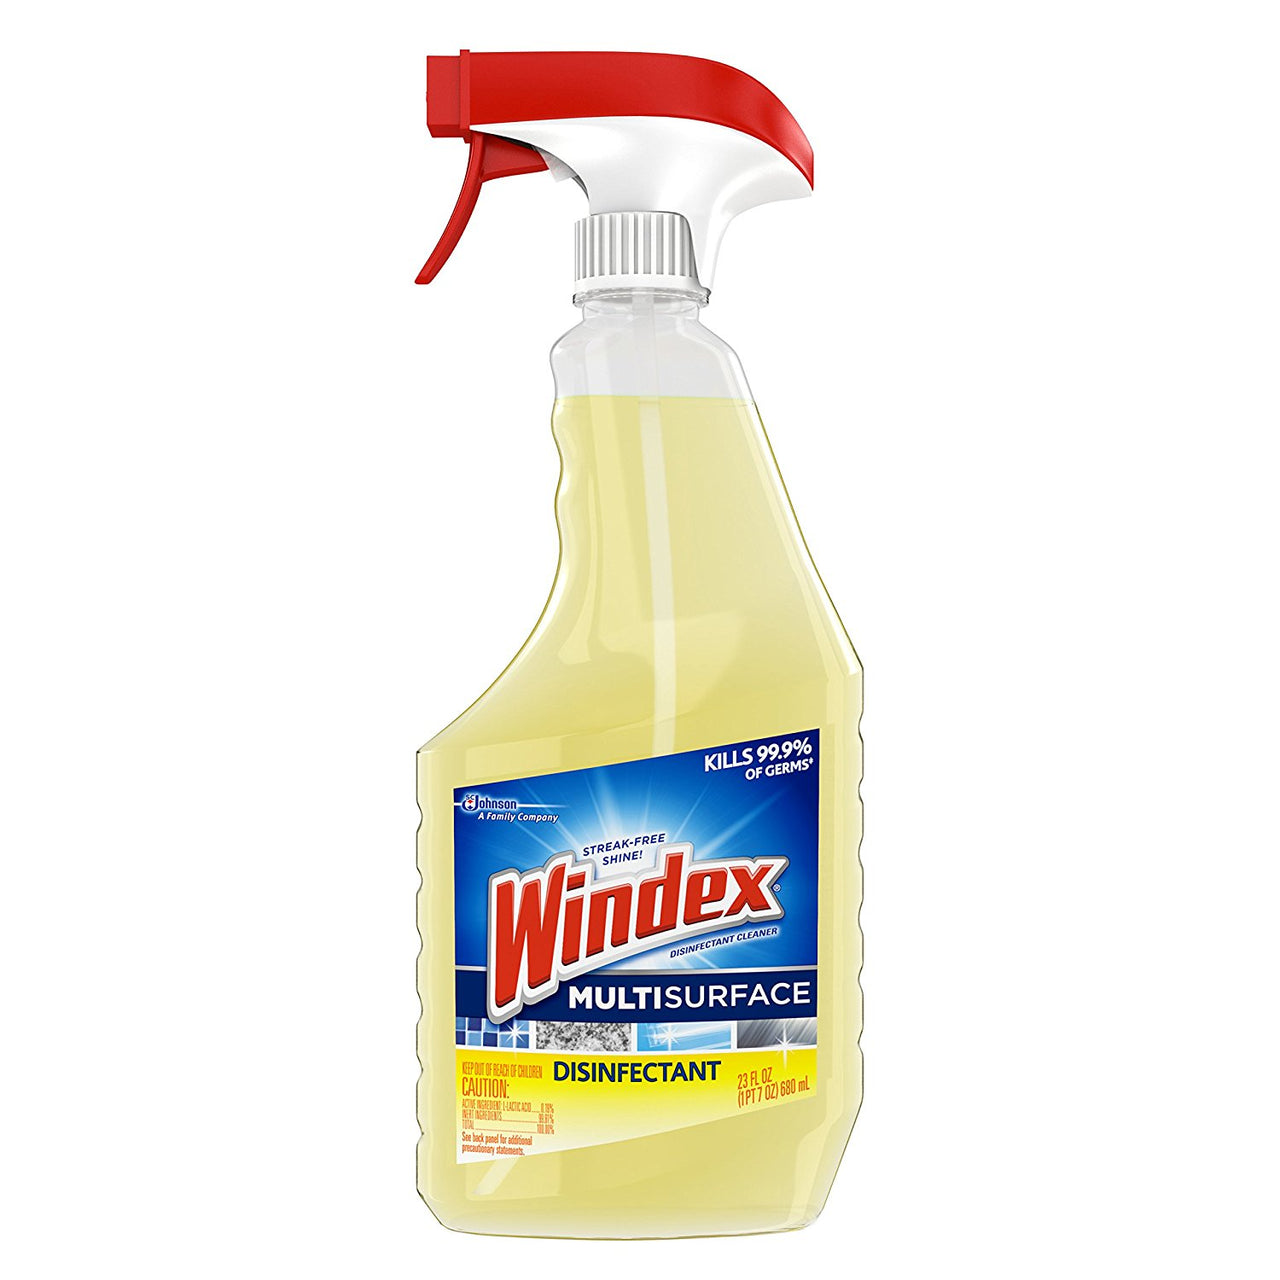 Windex 70251 Multi Surface Disinfectant Cleaner Spray, 23 Oz